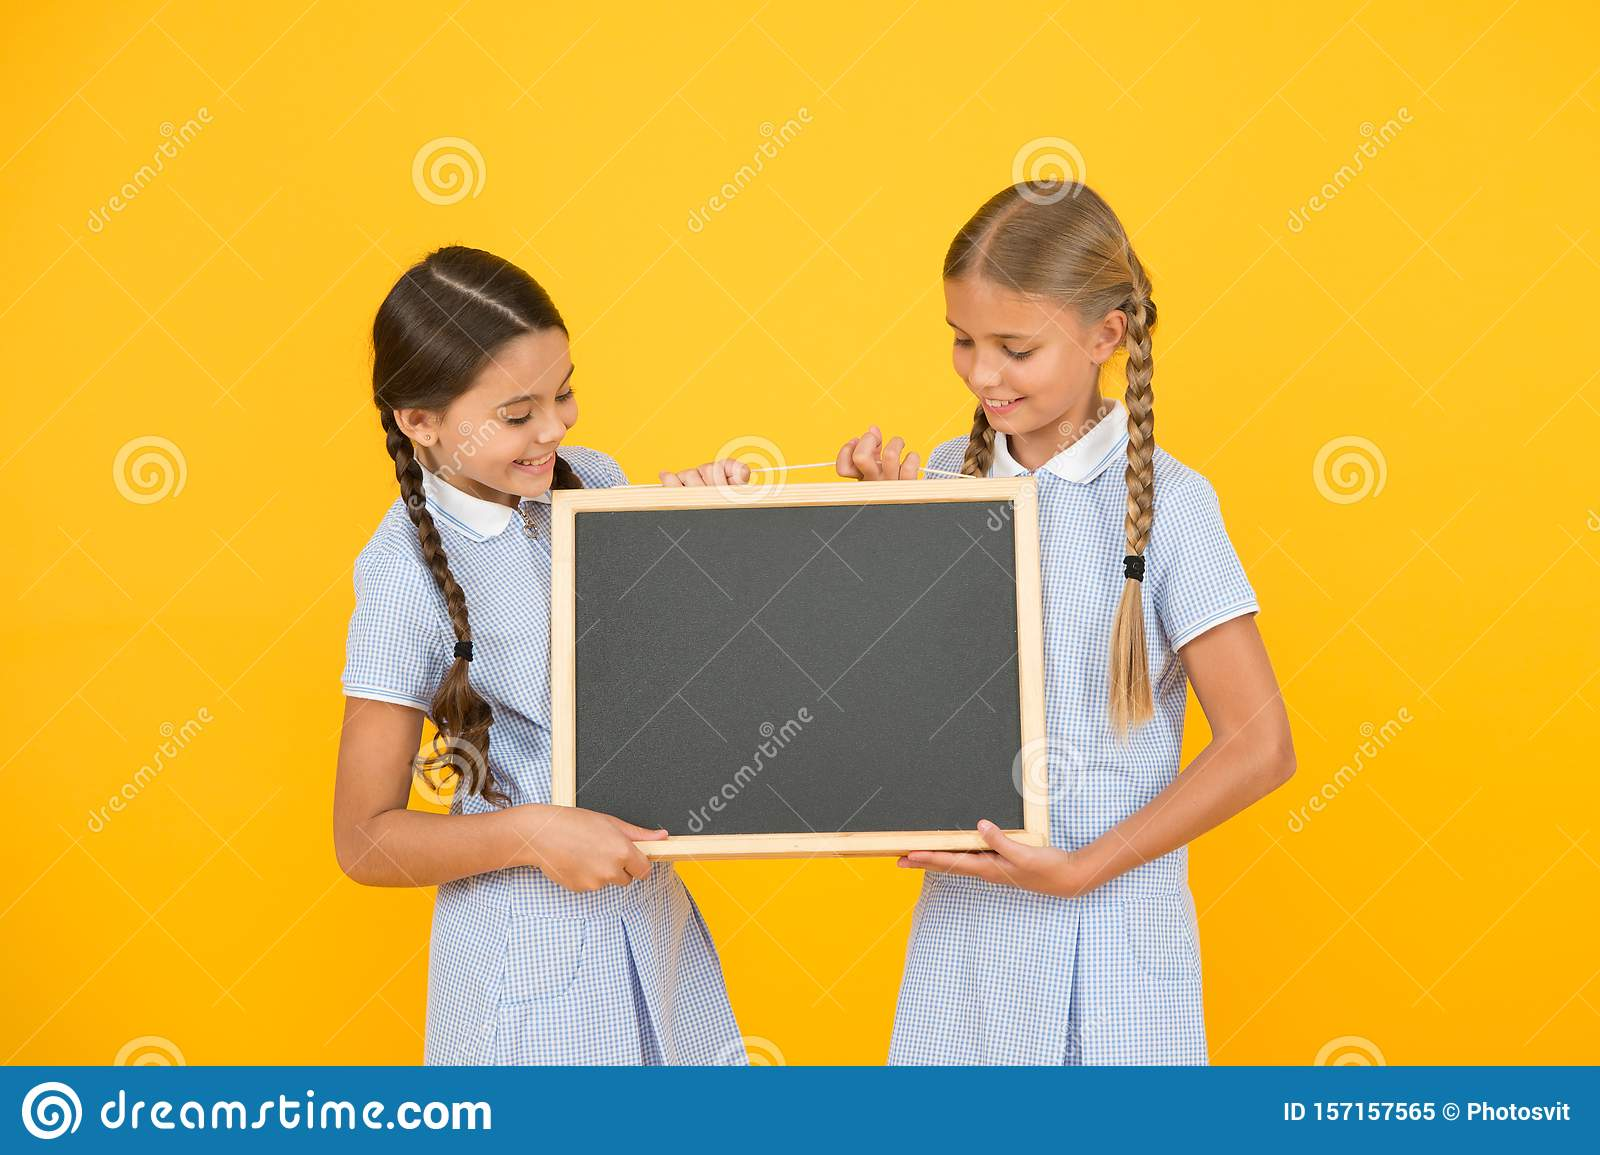 Back to school. small girls hold blackboard. children education. small girls presenting project. old school. copy space